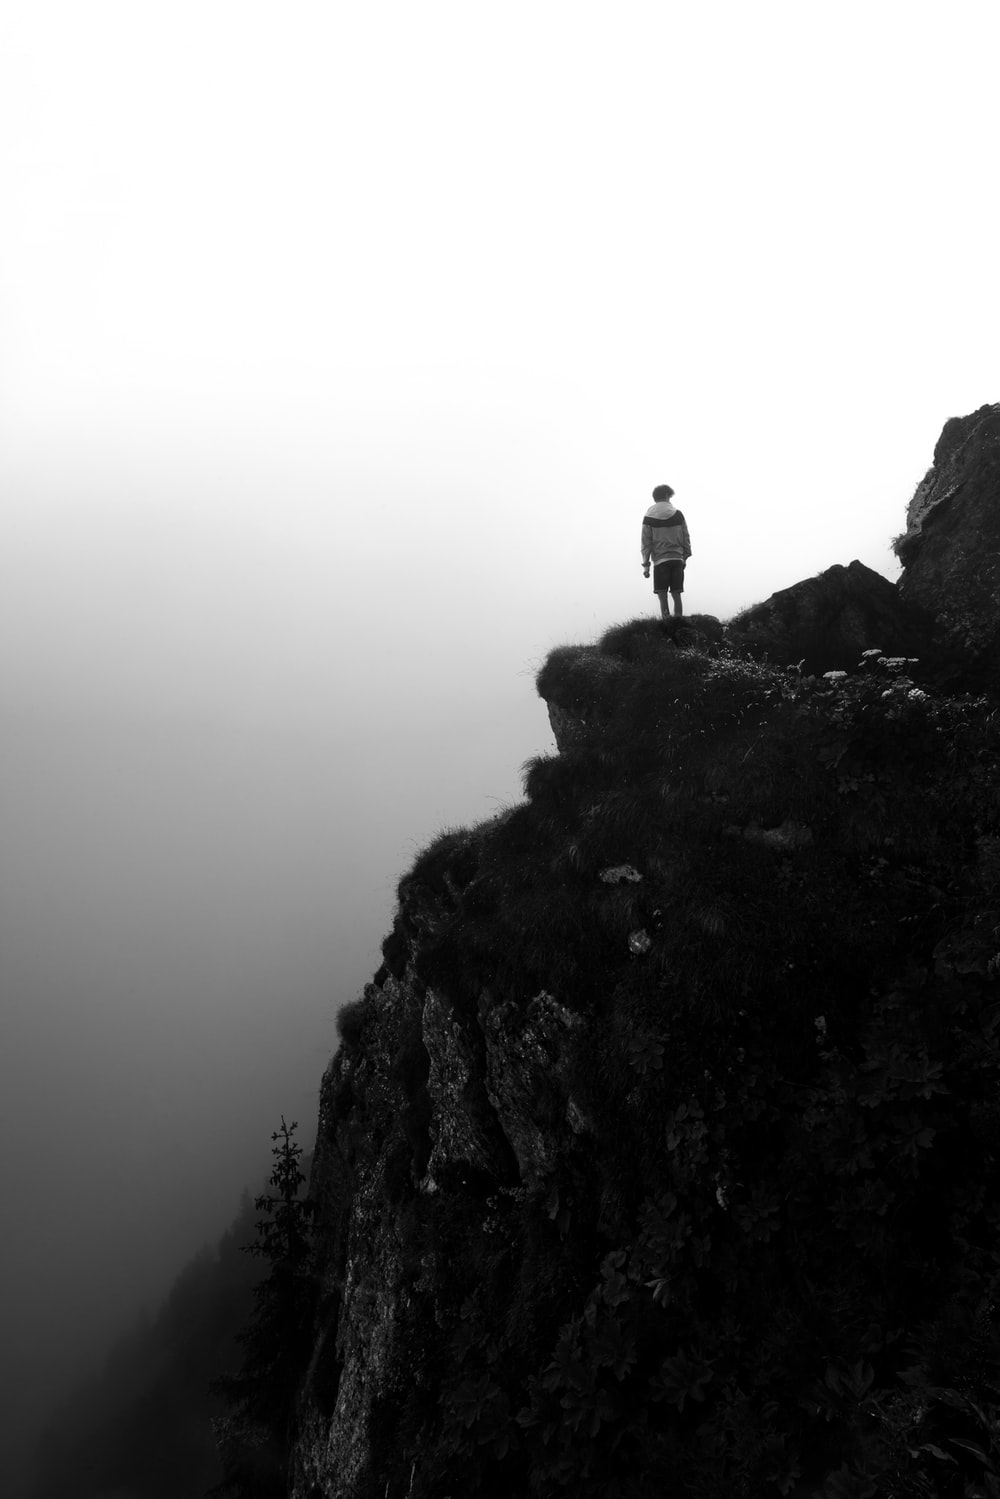 grayscale photography of person standing on cliff